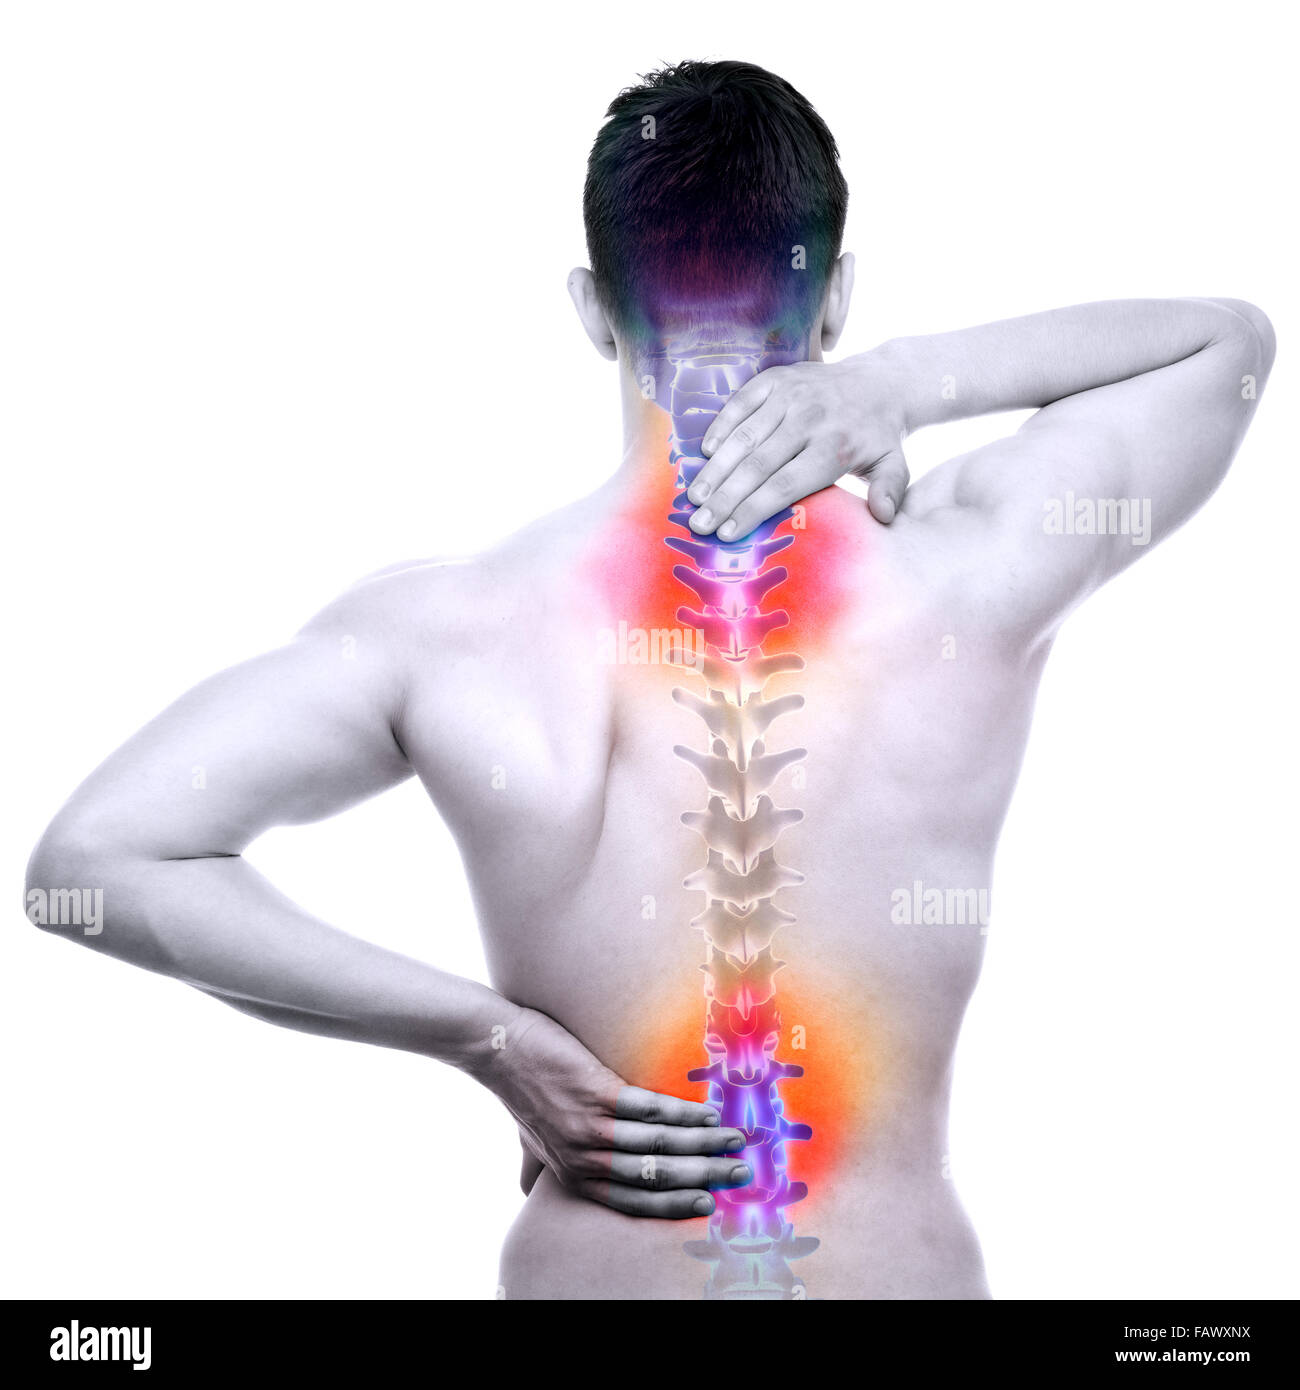 SPINE Pain - Male Hurt Backbone isolated on white - REAL Anatomy concept - Stock Image